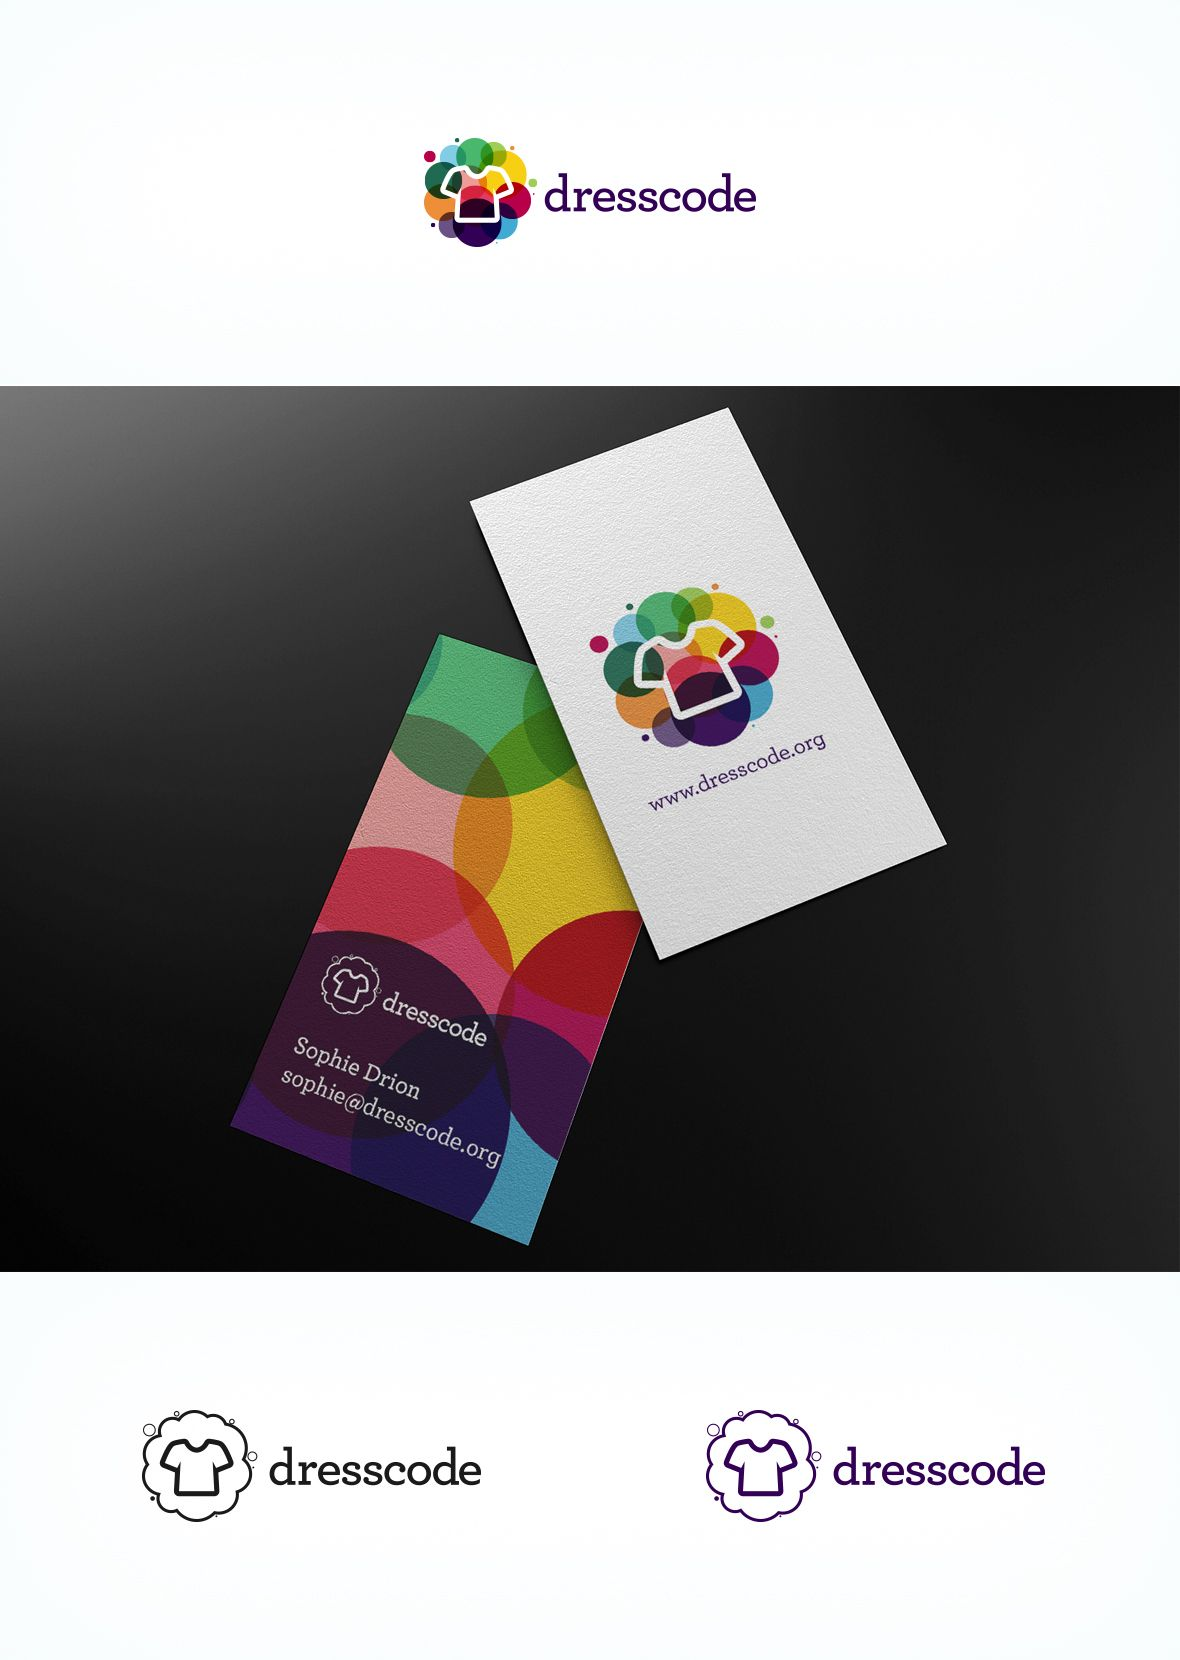 Top 9 June 2013: Logo & business card for dresscode by creptium ...